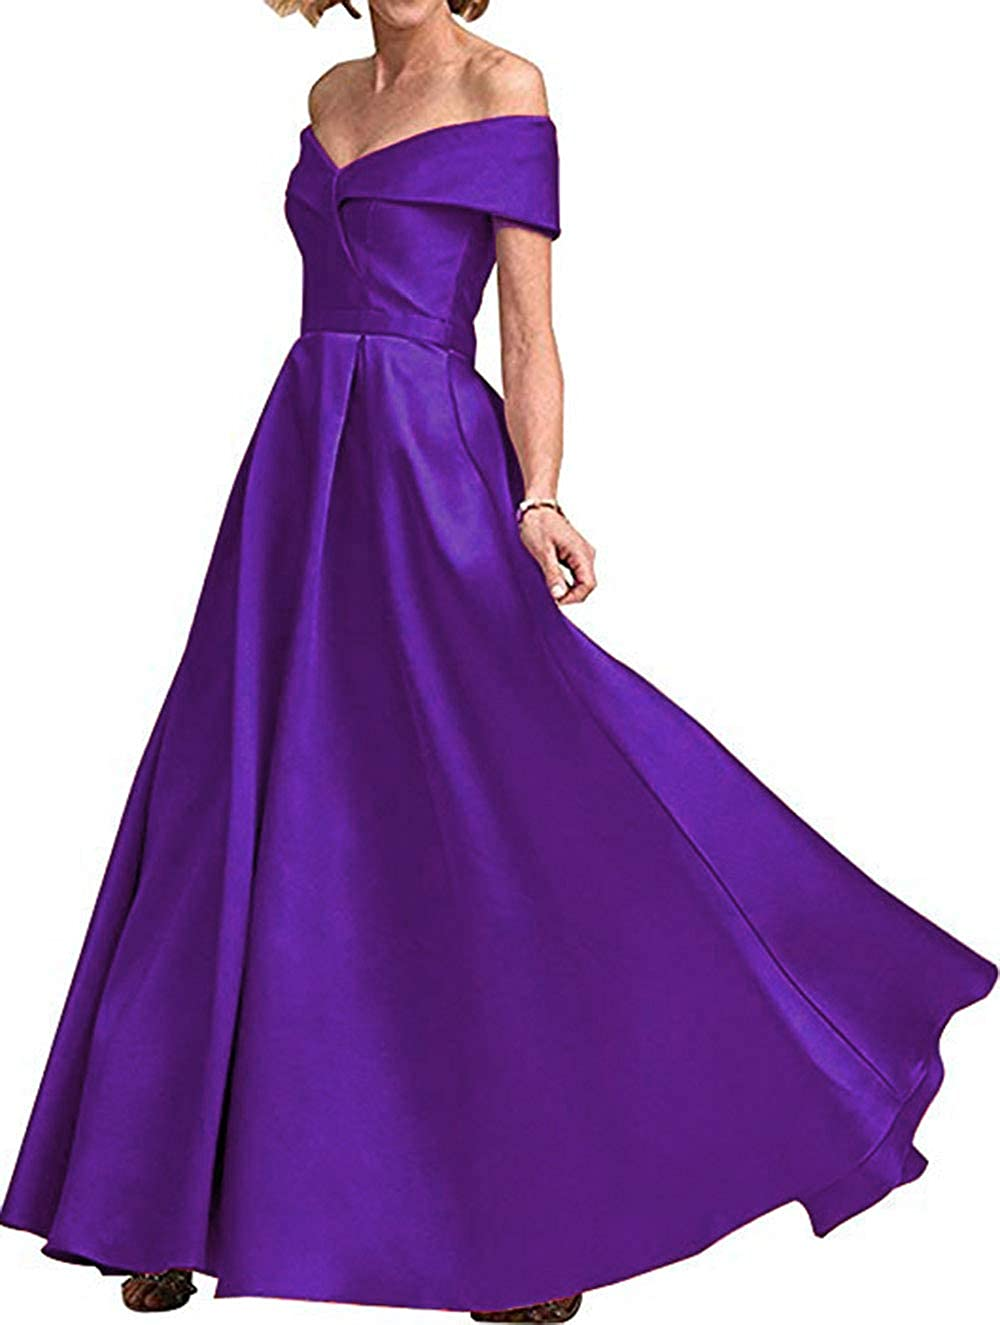 Purple Rmaytiked Womens Off The Shoulder Prom Dresses Long 2019 Satin A Line Formal Evening Ball Gowns with Pockets